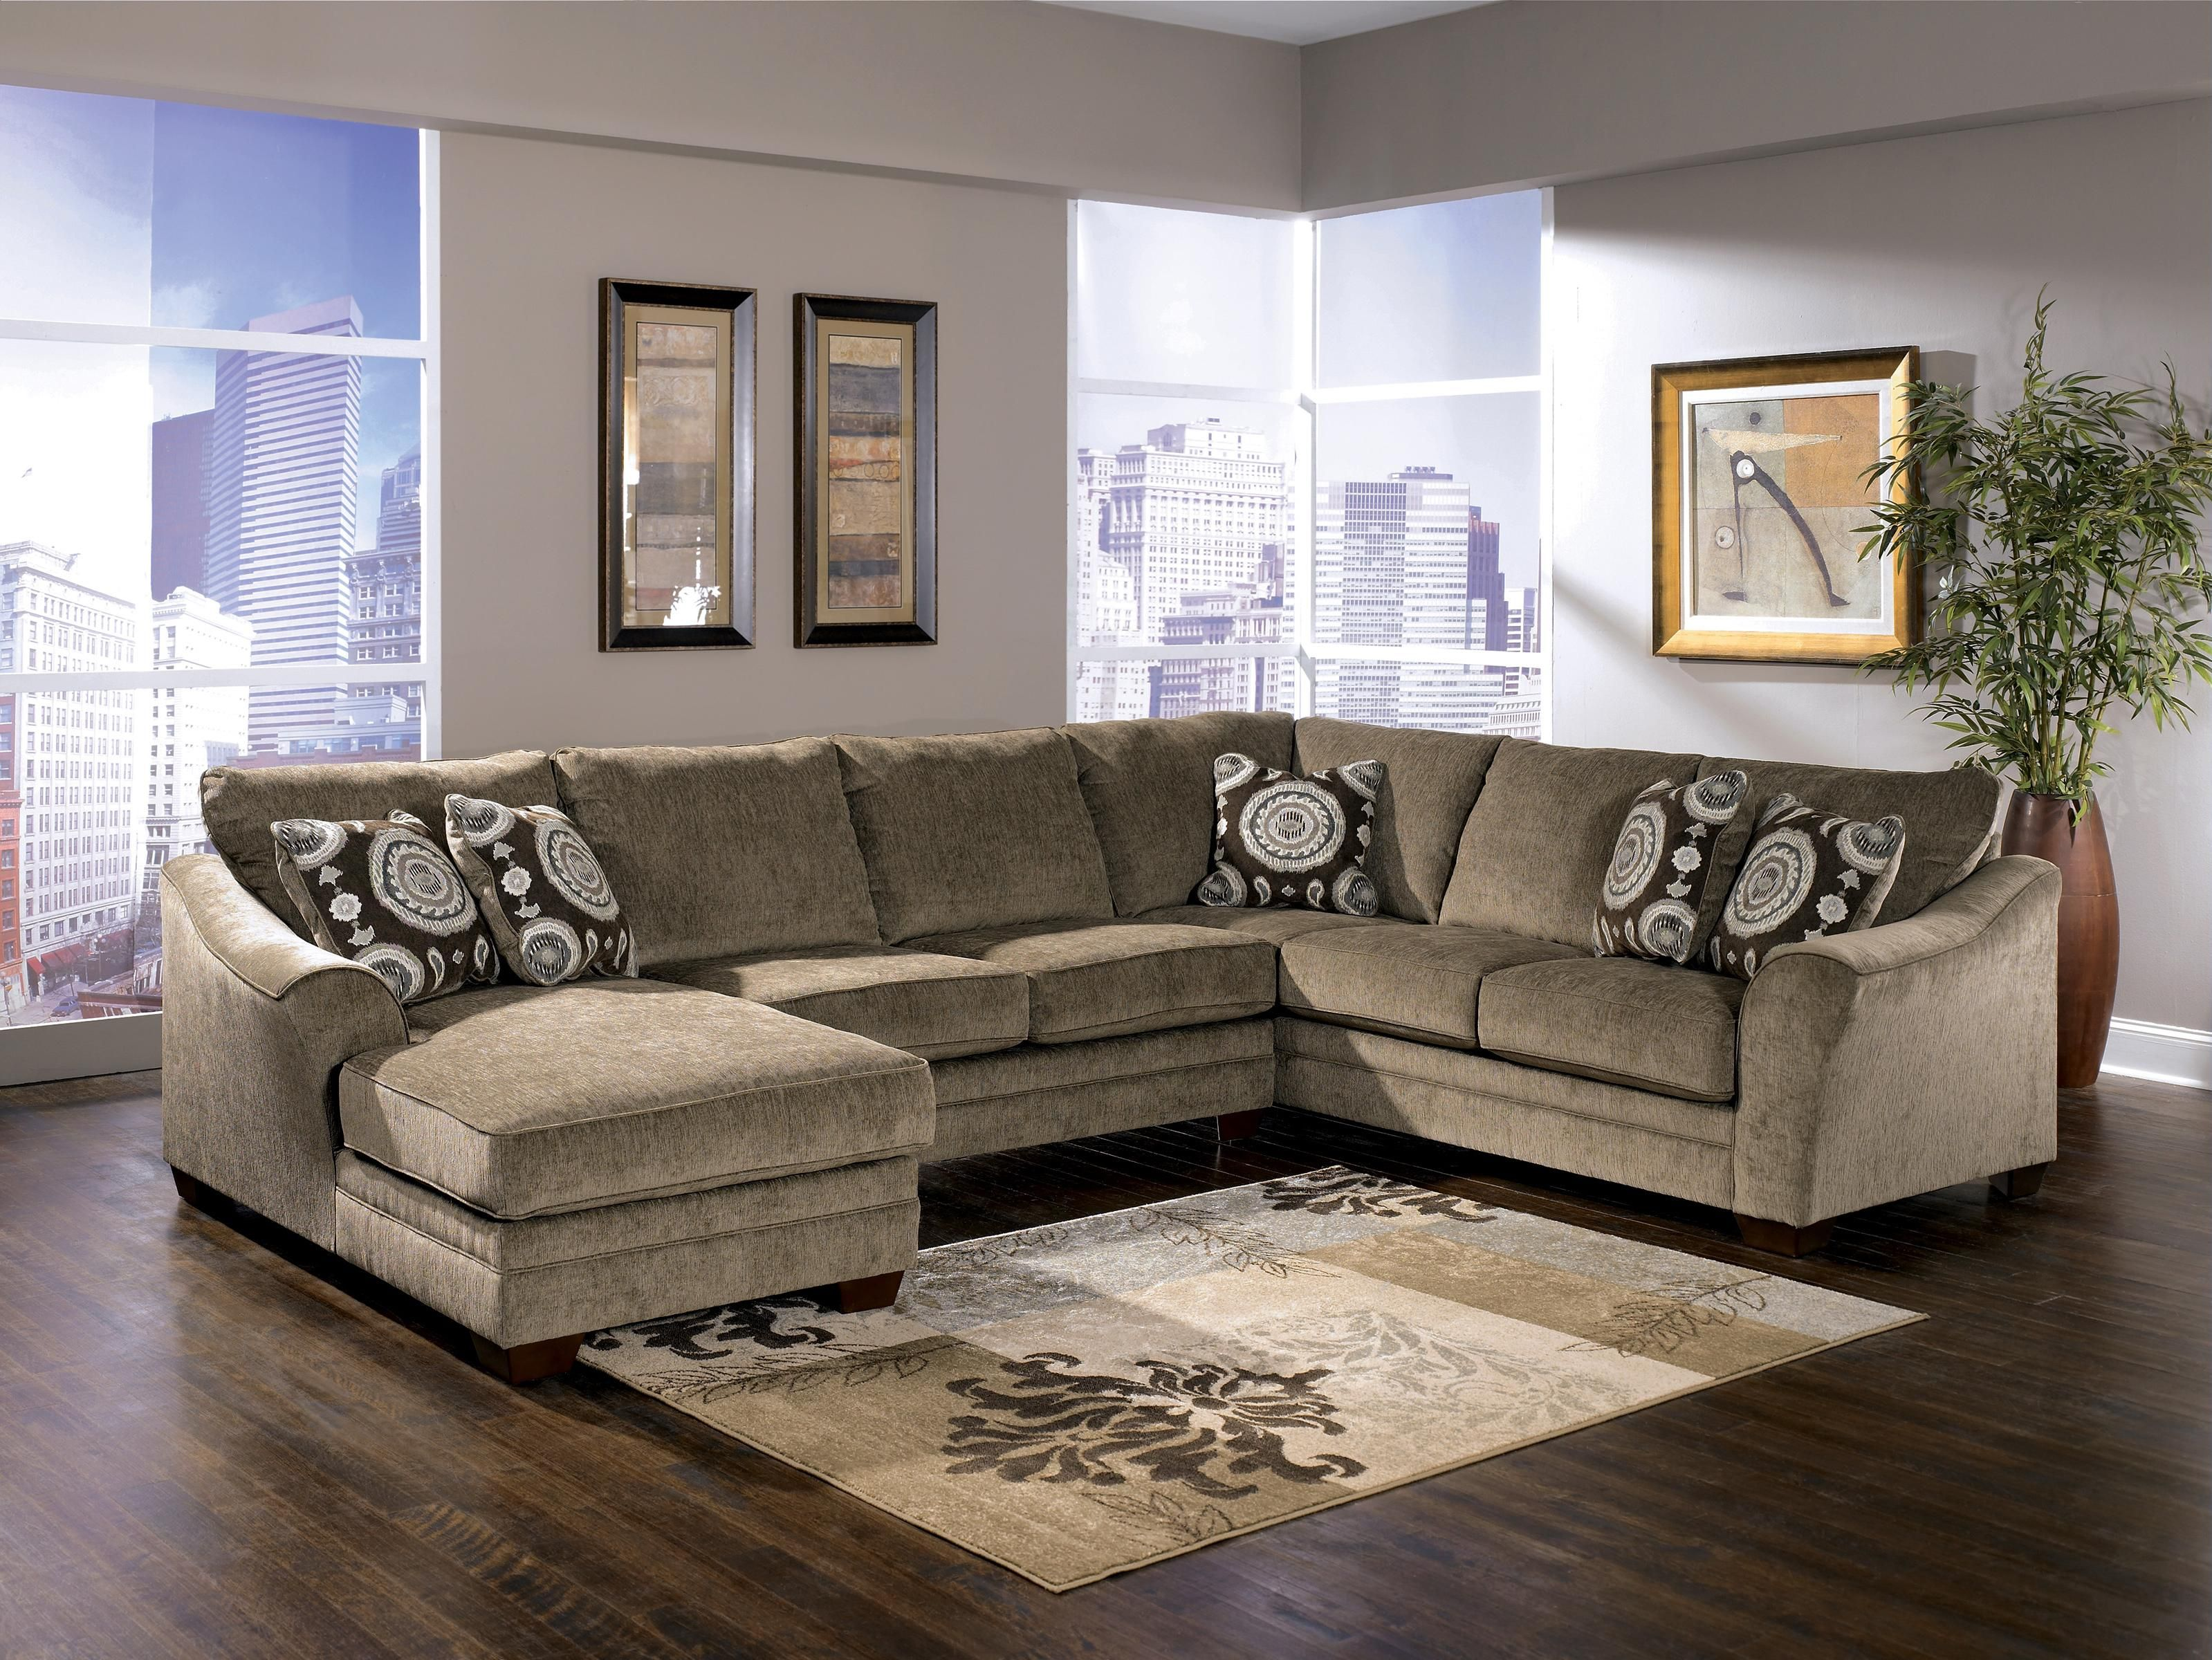 Couch Contemporary Designmarblesliving Room Sectionalsectional